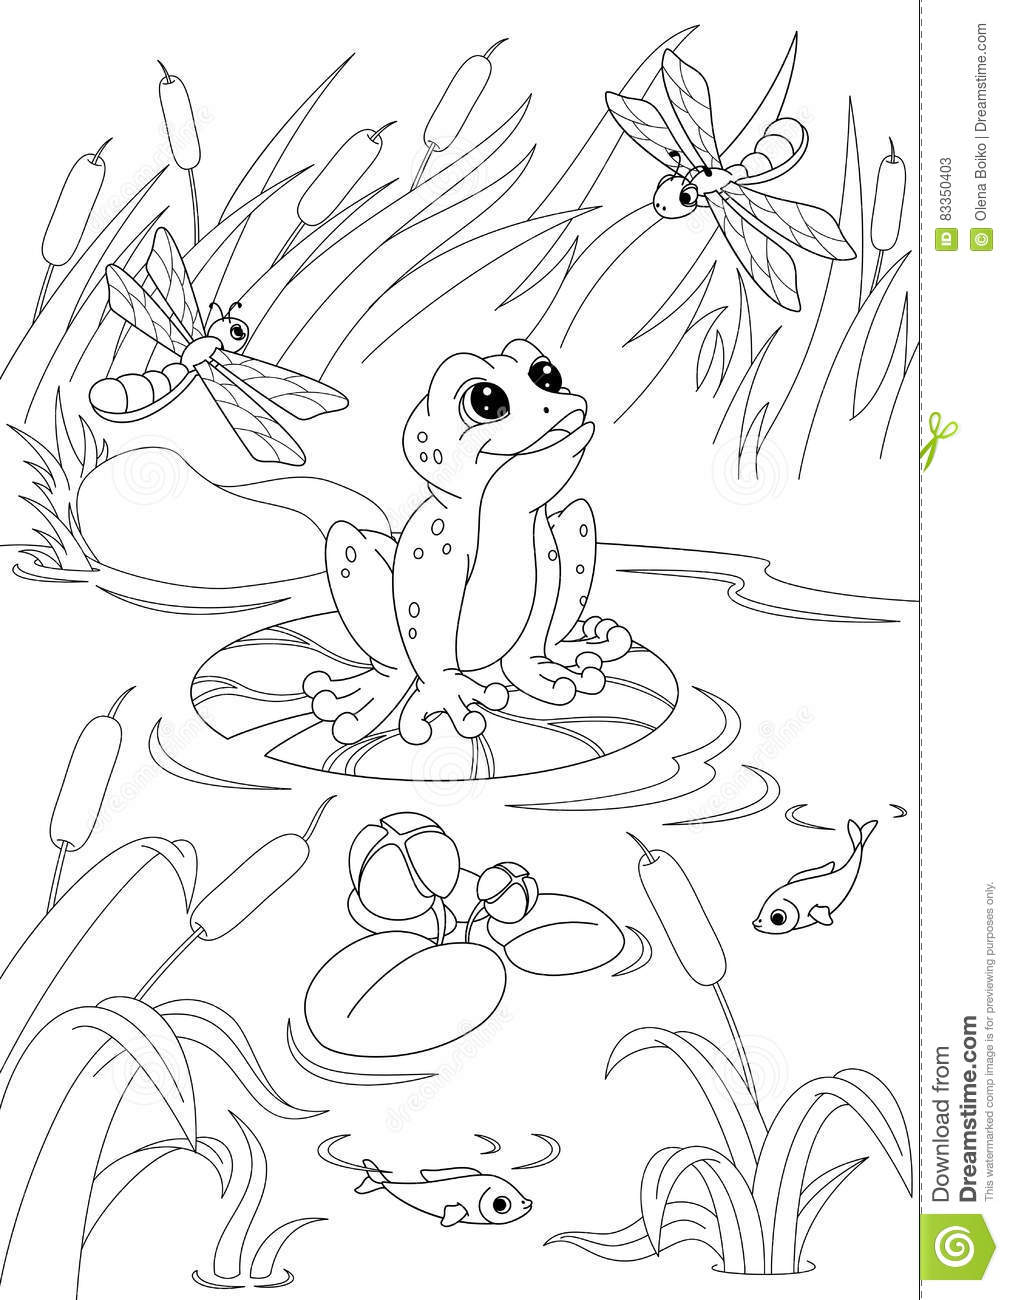 pond coloring pages | Pond Coloring Page stock vector. Illustration of water ...